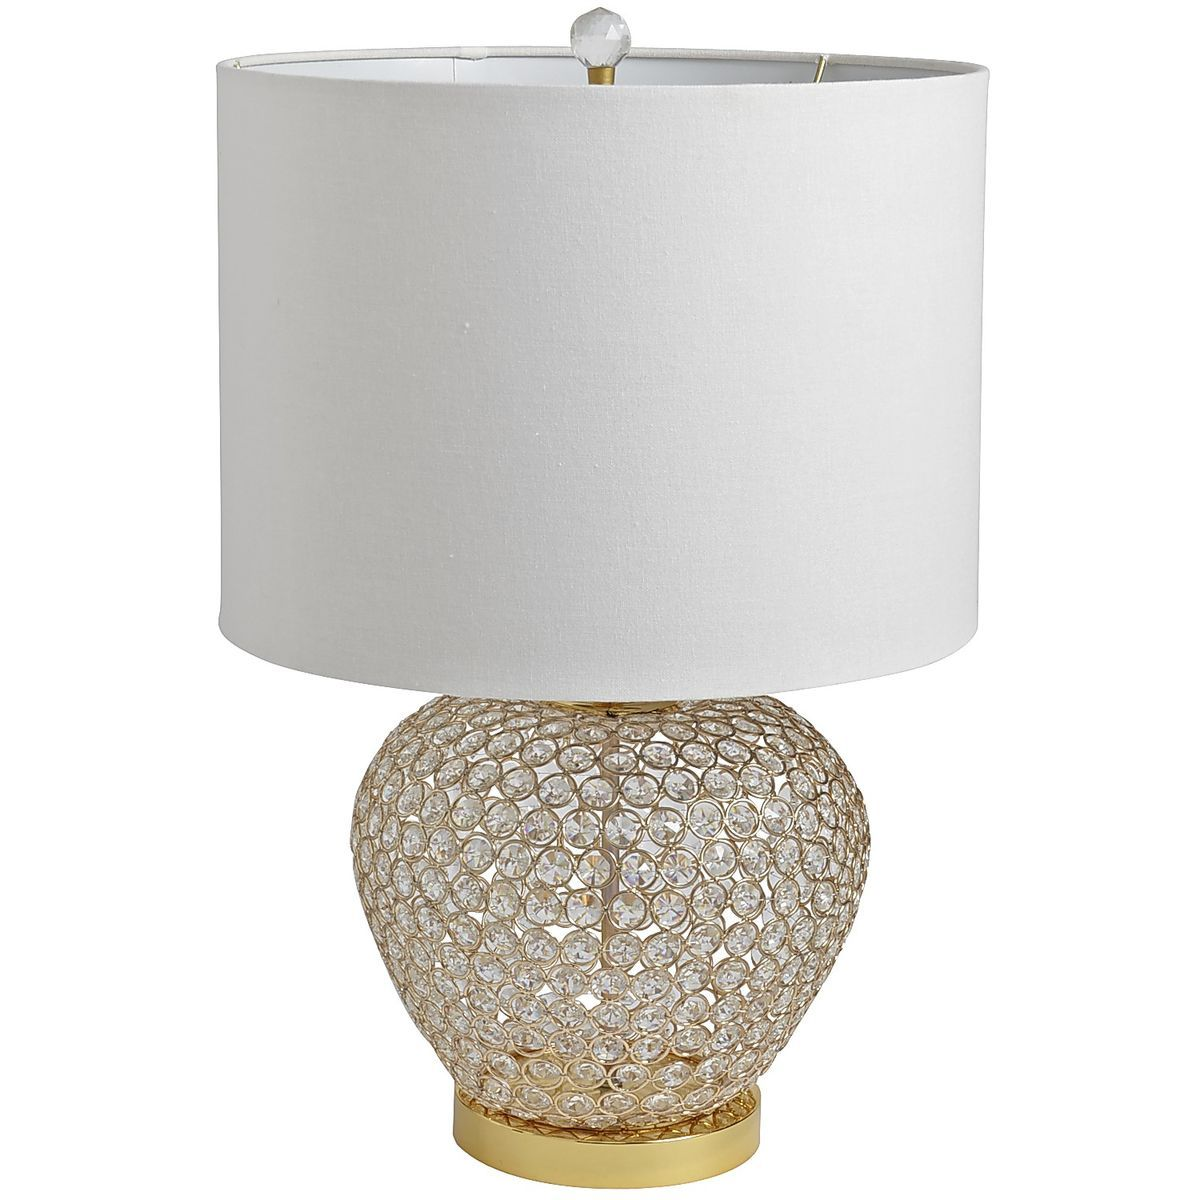 Crystal Bead Urn Lamp Gold Pier 1 Imports Gold Bedside Lamps